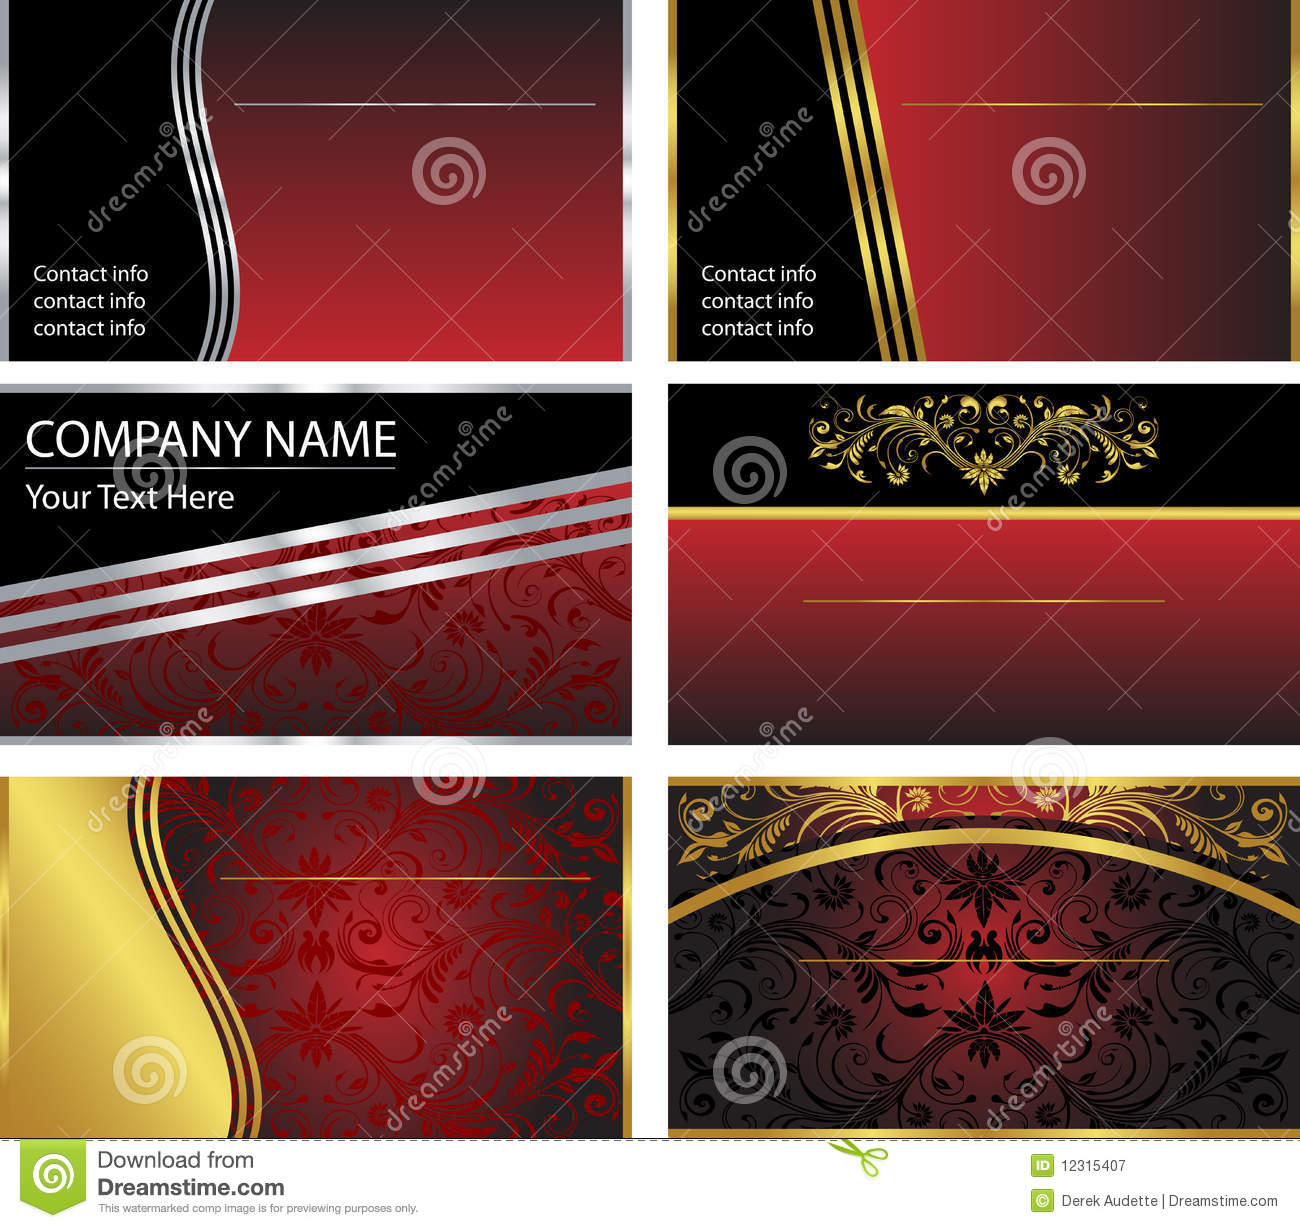 Six Vector Business Card Templates Stock Vector - Illustration of ...